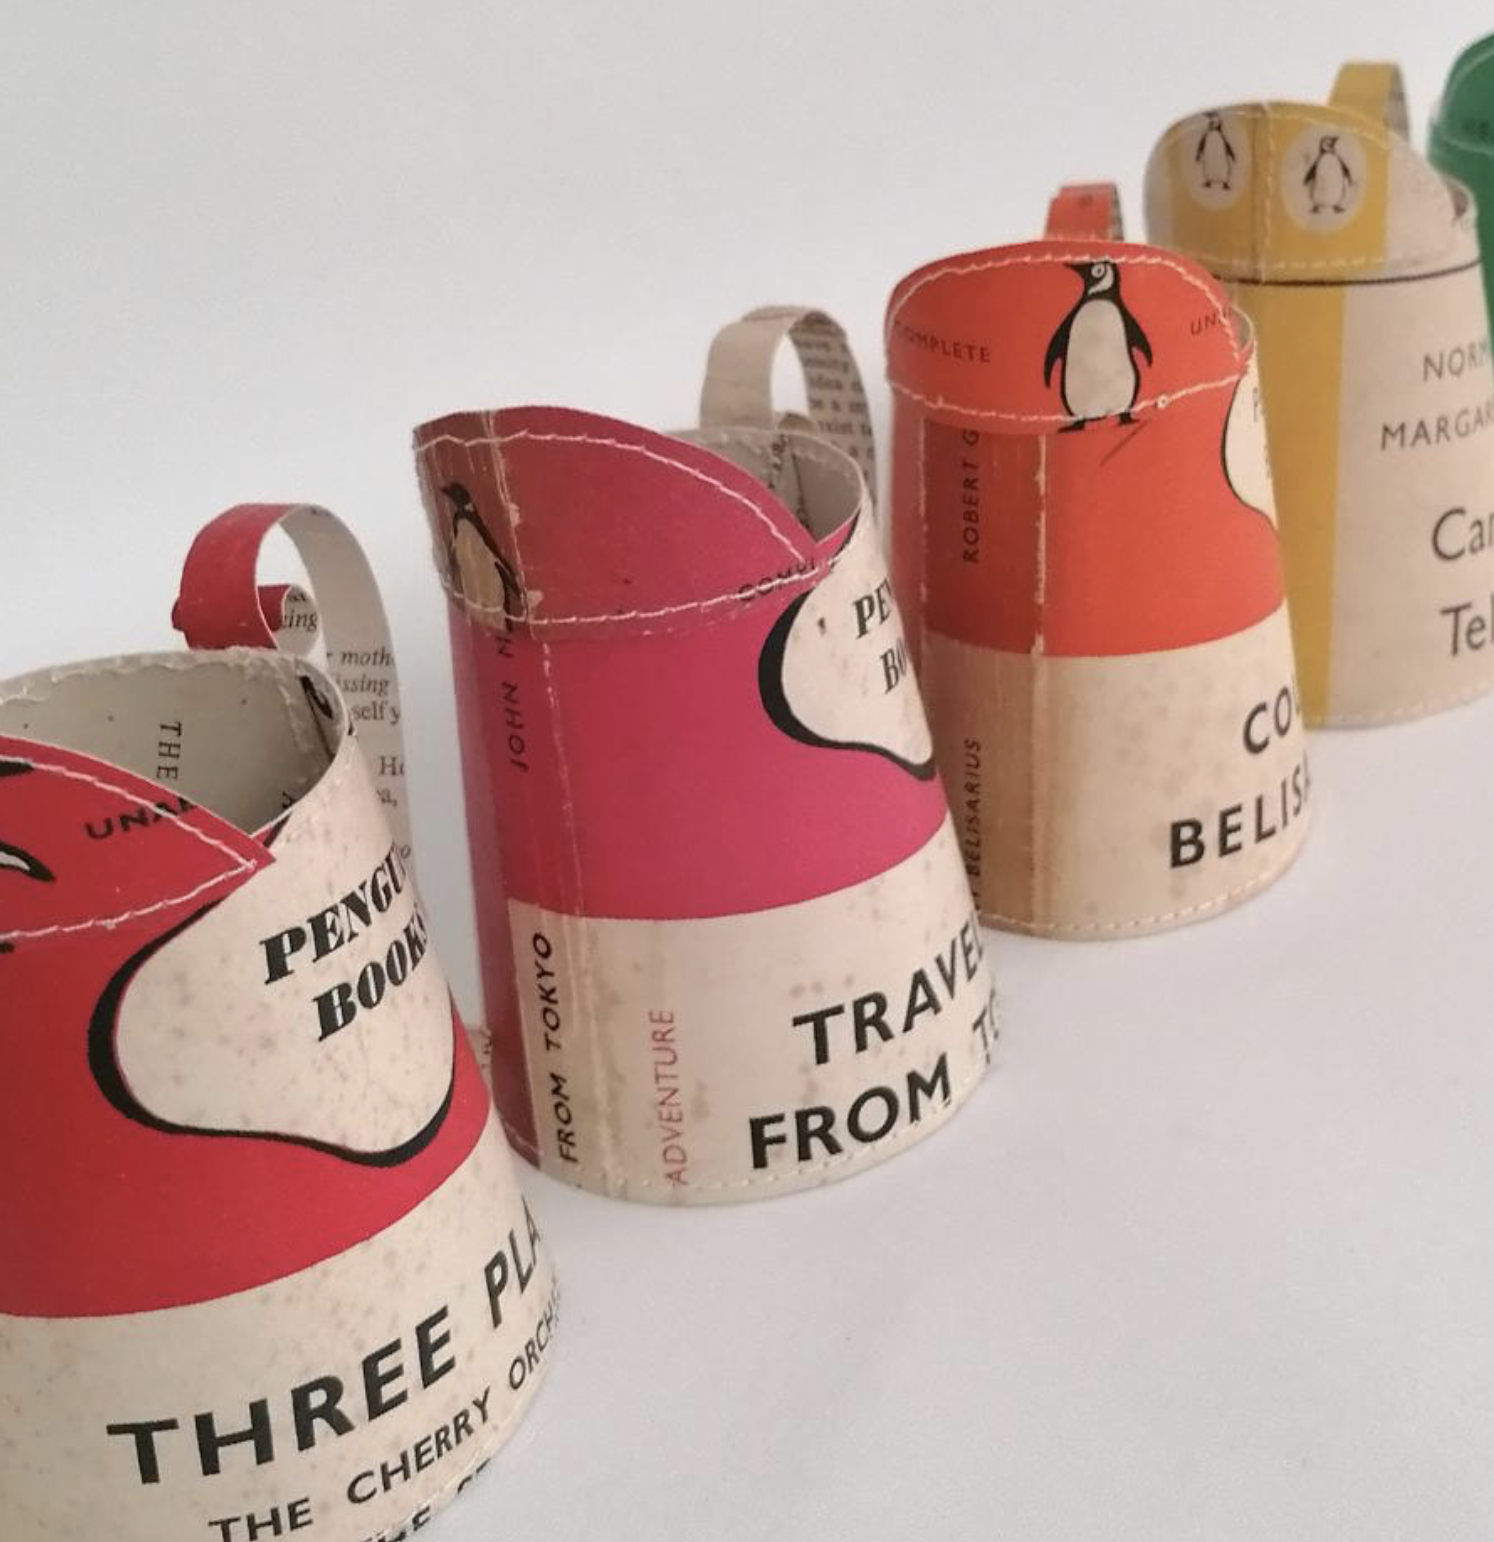 Limited edition Penguin paperback milk jugs by Jennifer Collier at madebyhandonline